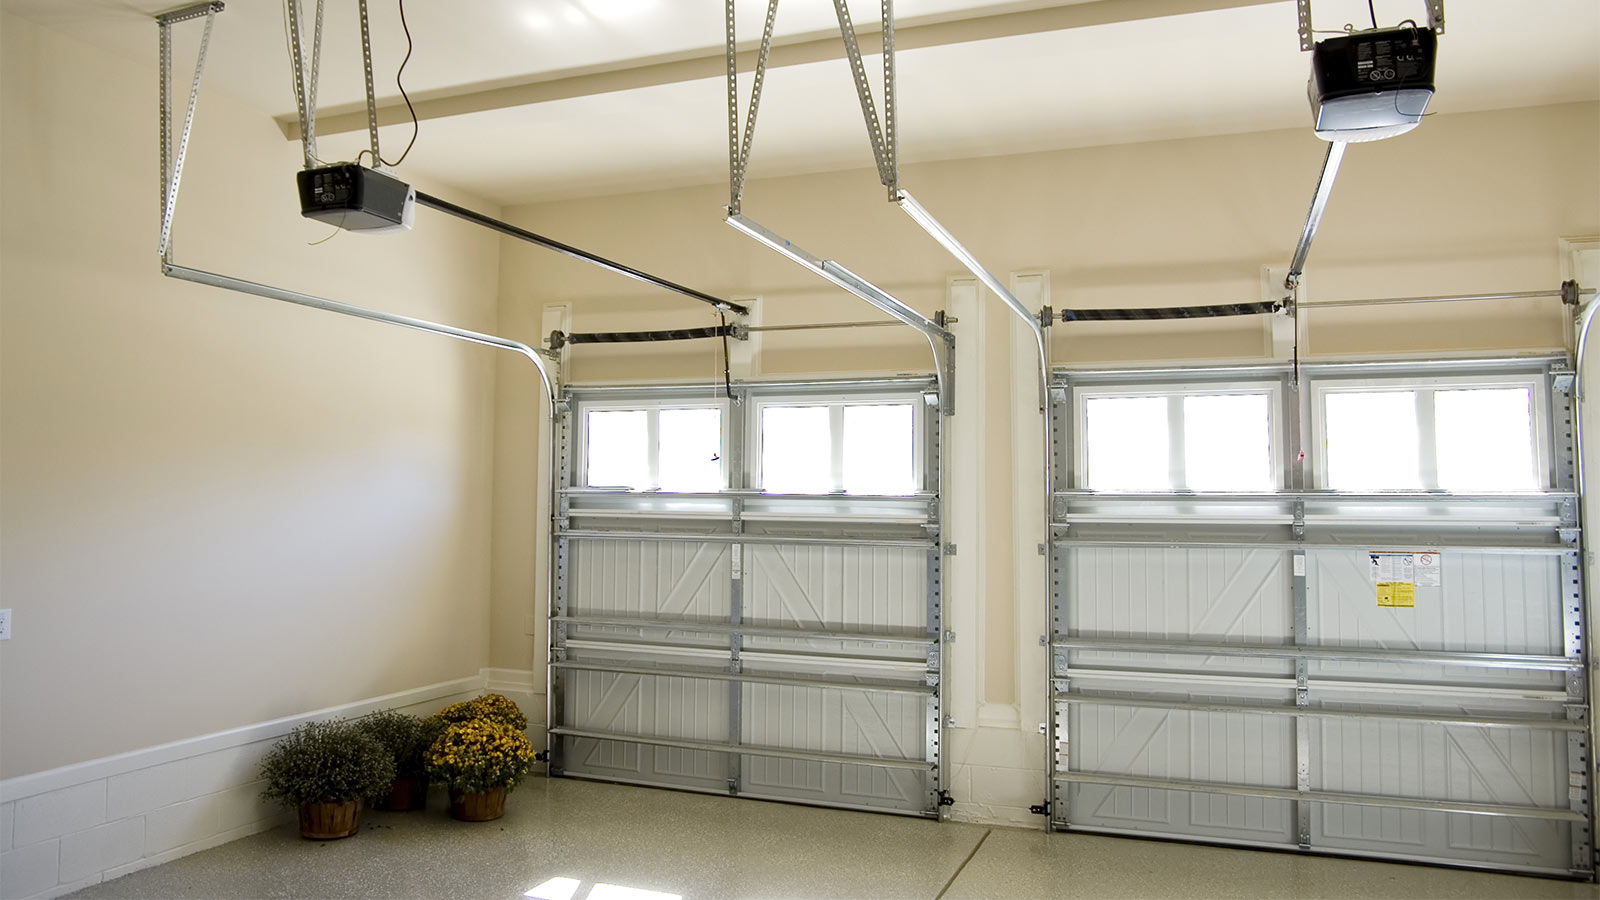 Sectional Garage Doors from Fire Shutters Watford suppliers.